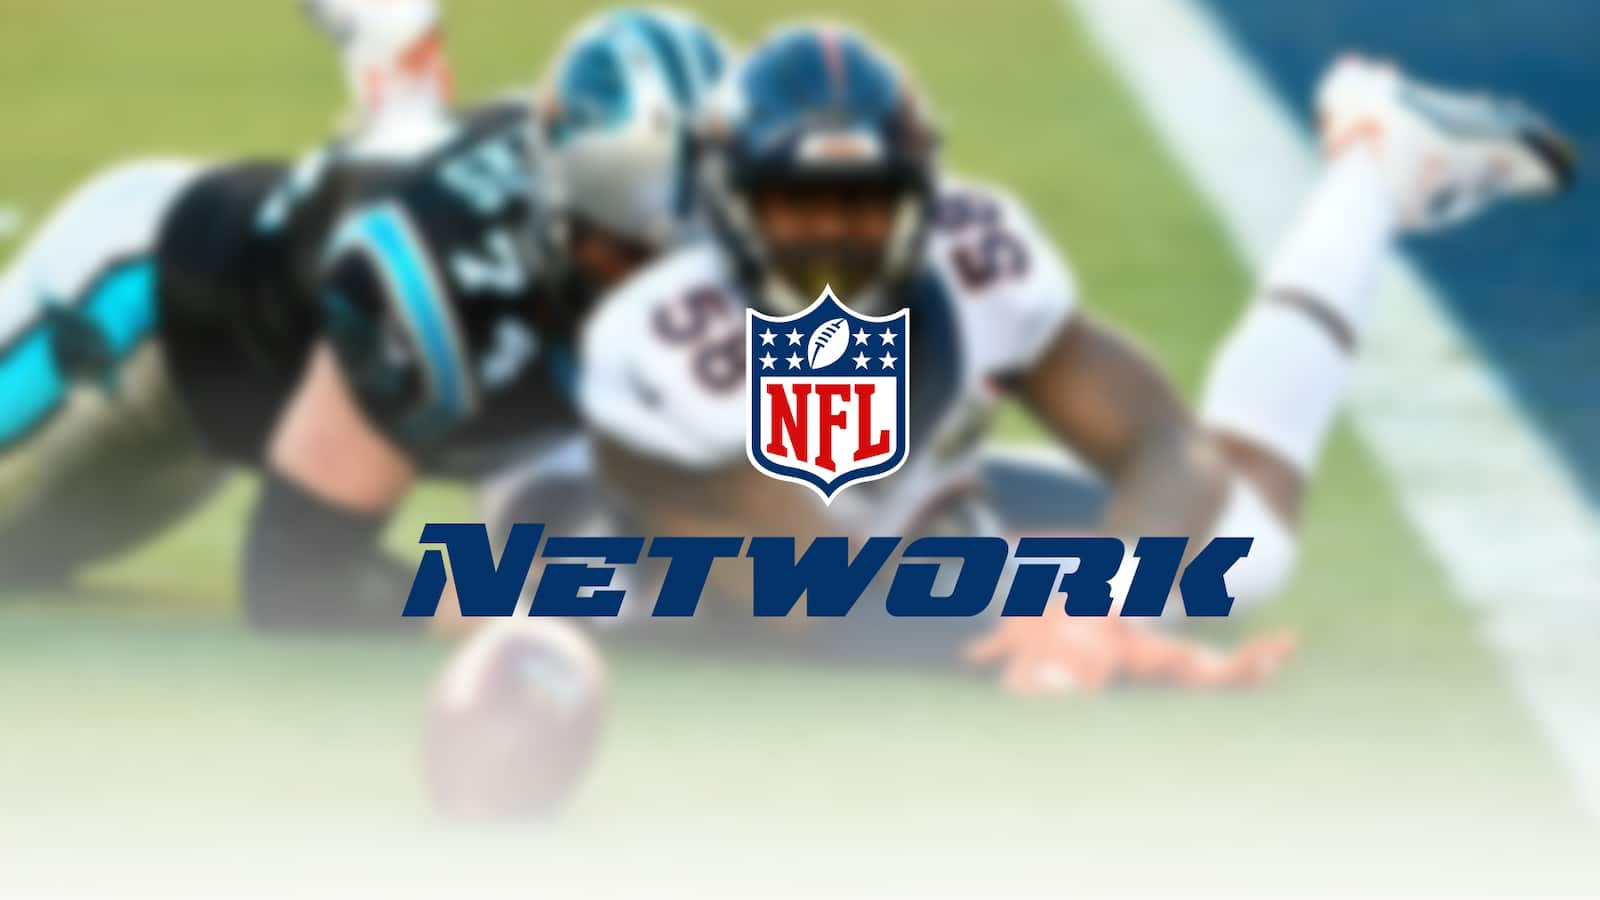 info for eb92f d4a20 NFL Network, Amr. Football - live streaming på Viaplay.dk